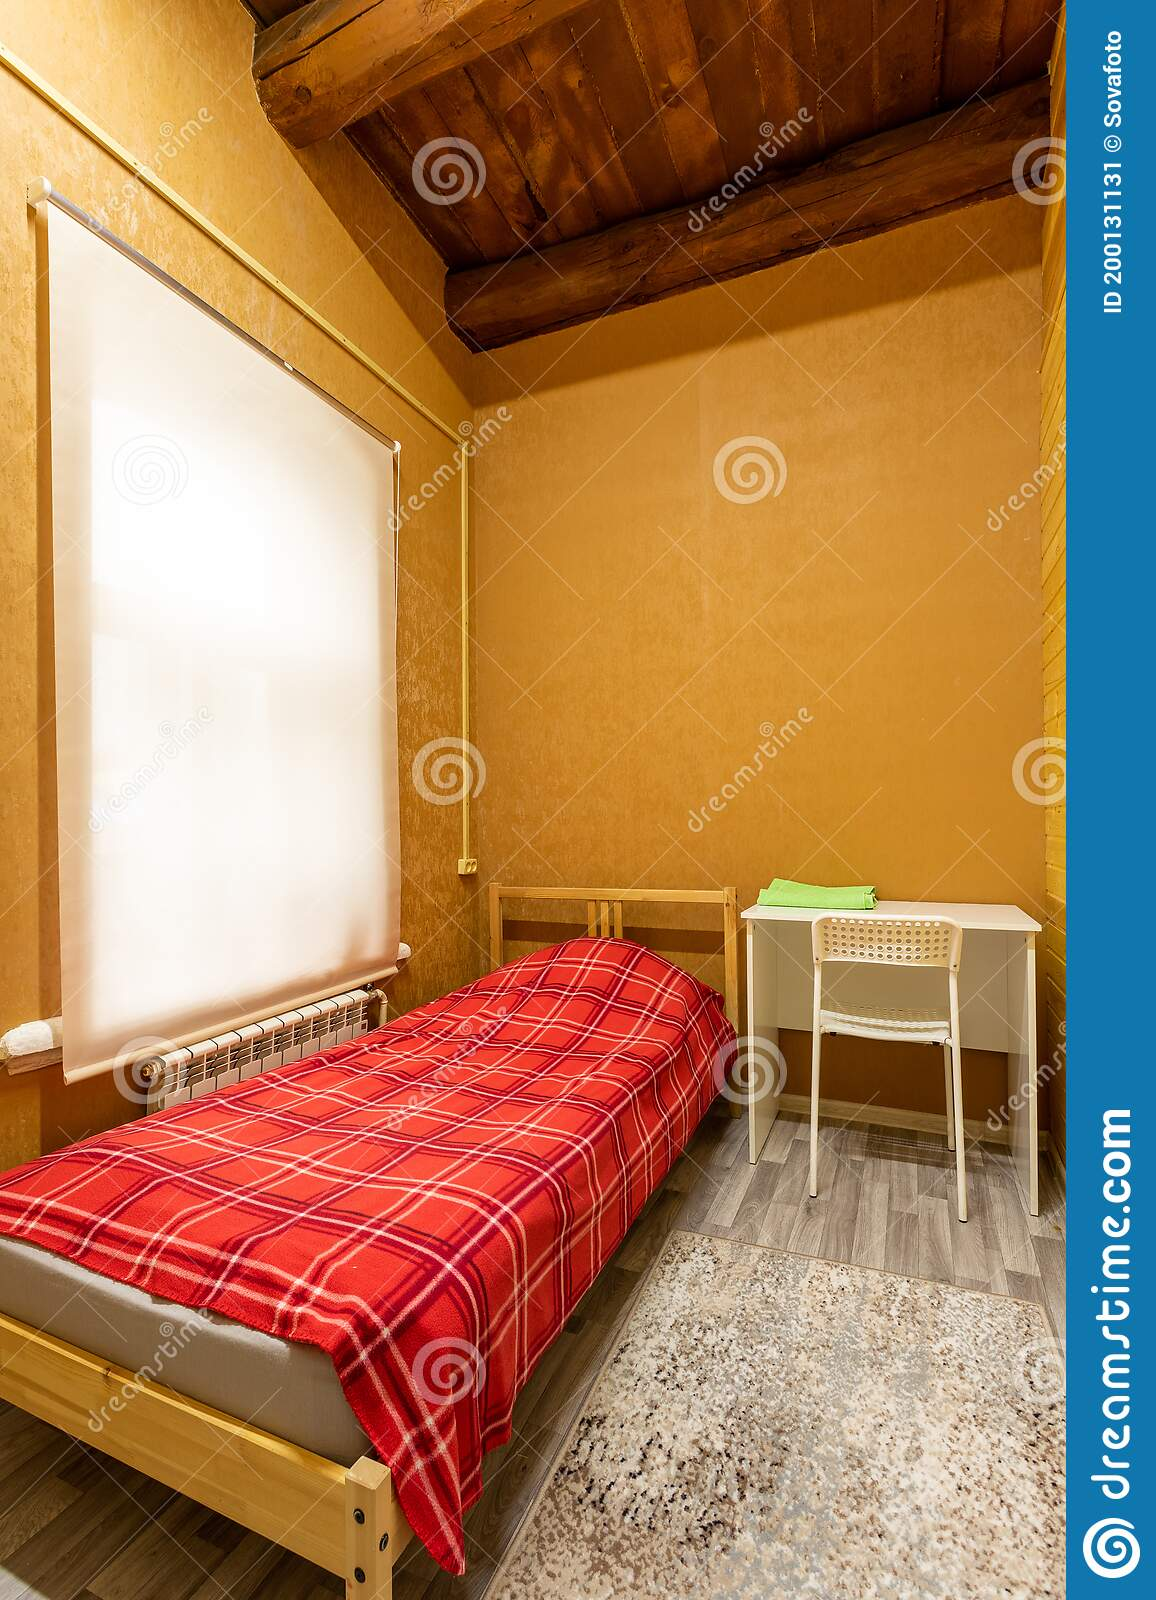 Wooden Bunk Beds Stock Image Image Of Mattress Hotel 200131131